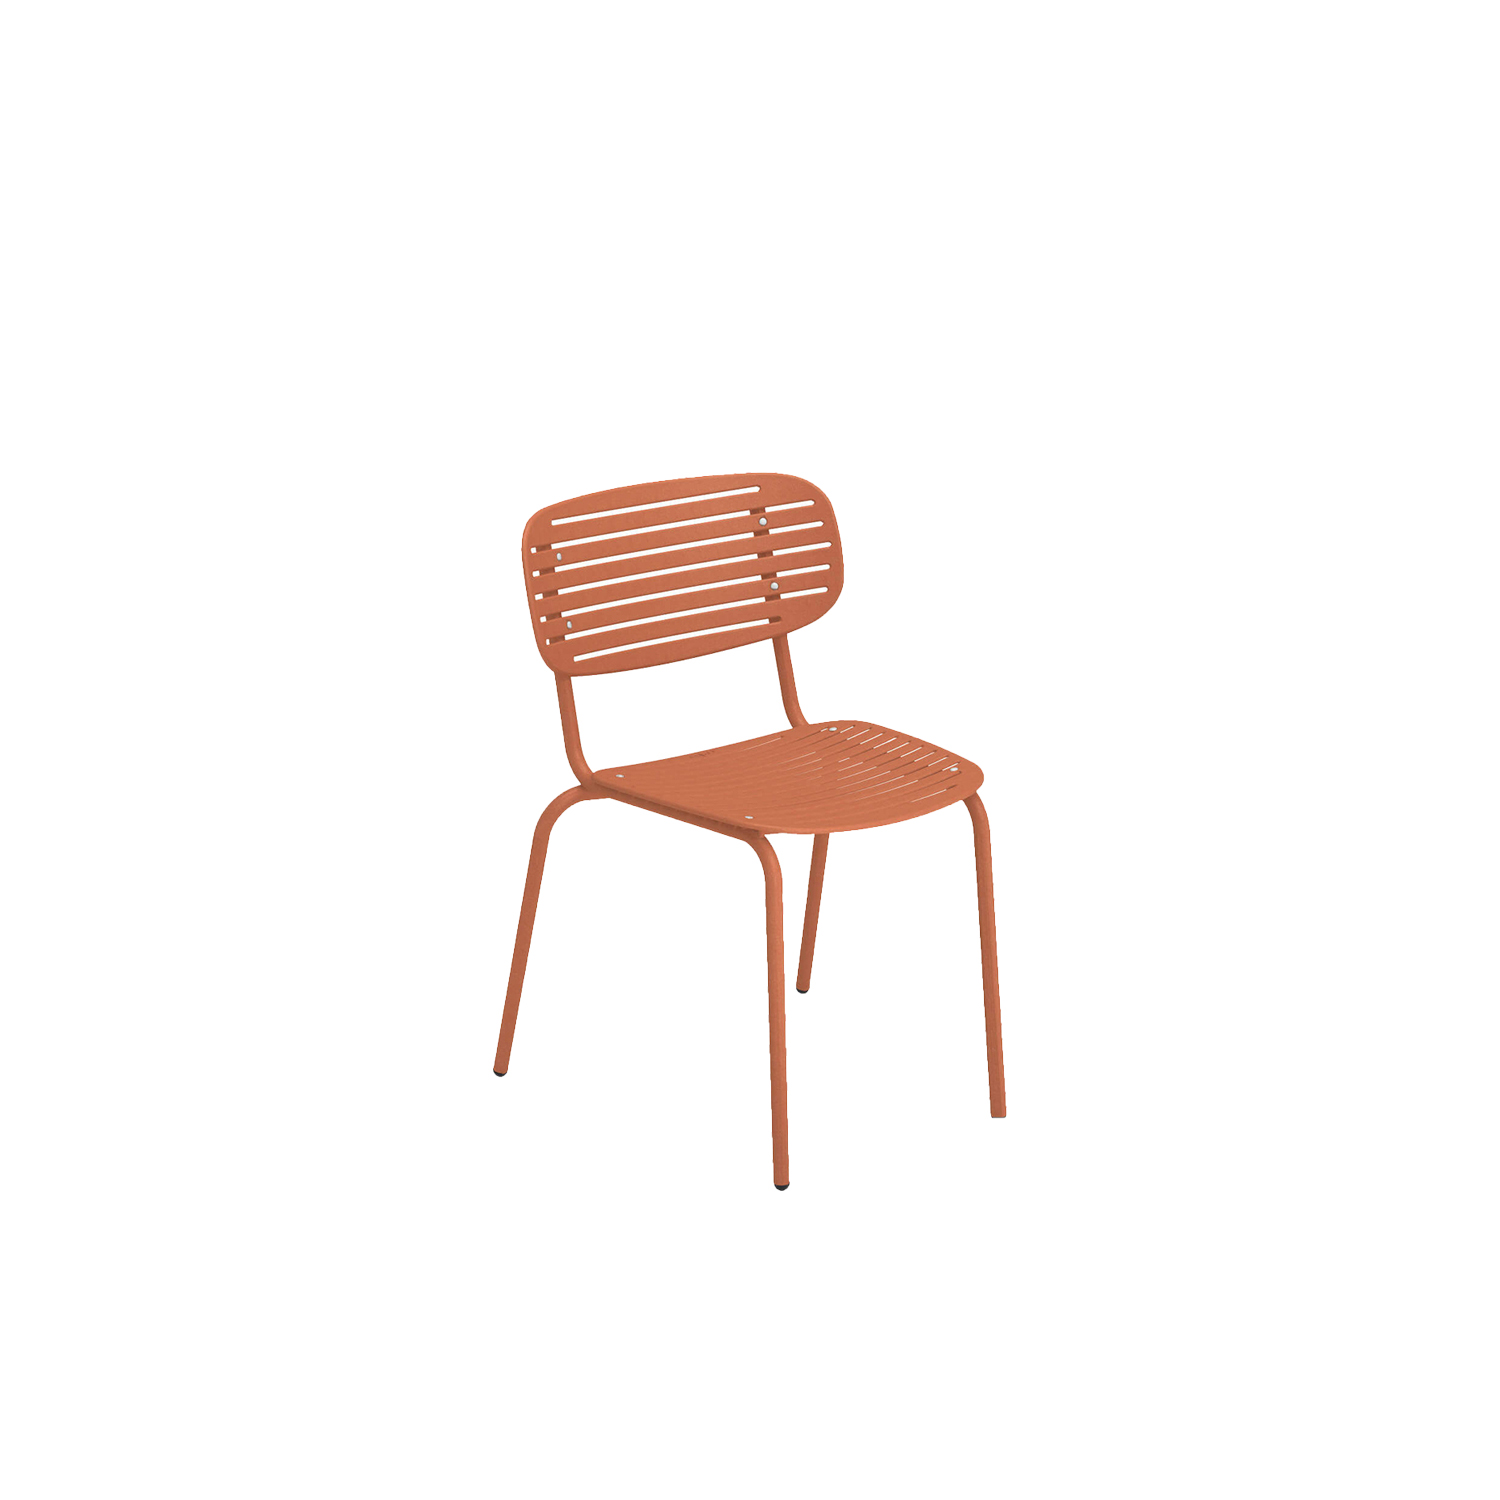 Mom Chair - Set of 4 - Mom is a brightly coloured collection of steel chairs in two versions, a chair and an armchair. The graphic effect of the elegant, sculptural, metal backrest lightens the soft, snug shapes. The solid colour palette gives this collection a young, fresh and ironic touch.